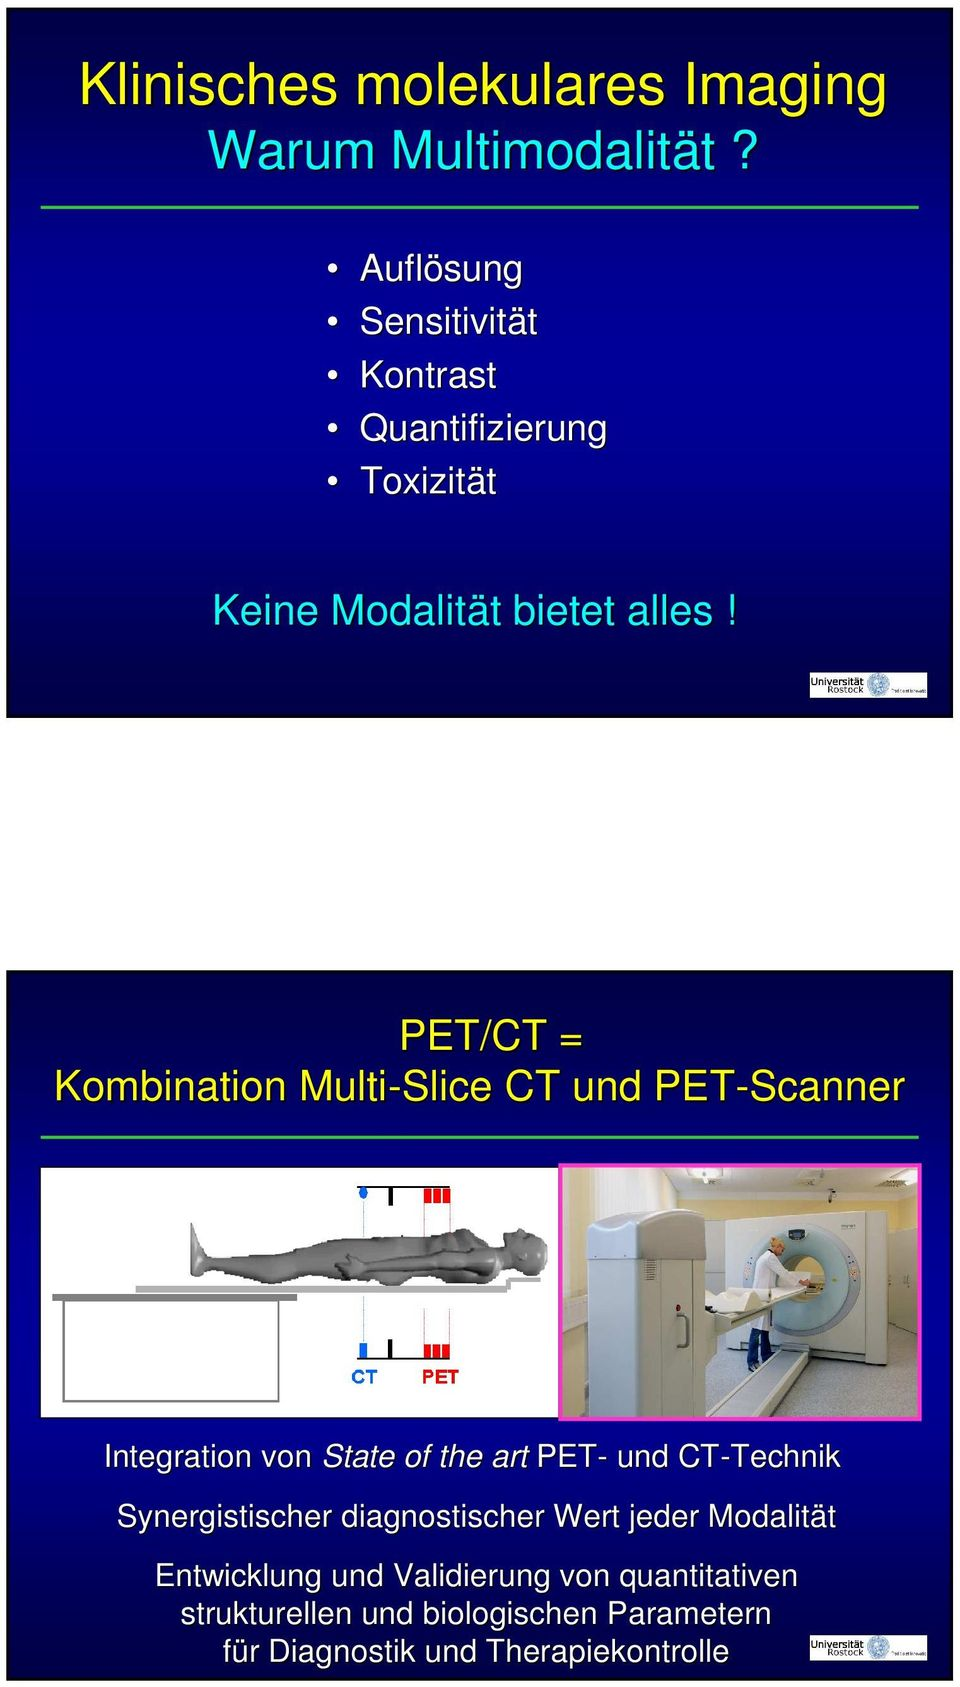 PET/CT = Kombination Multi-Slice CT und PET-Scanner Integration von State of the art PET- und CT-Technik